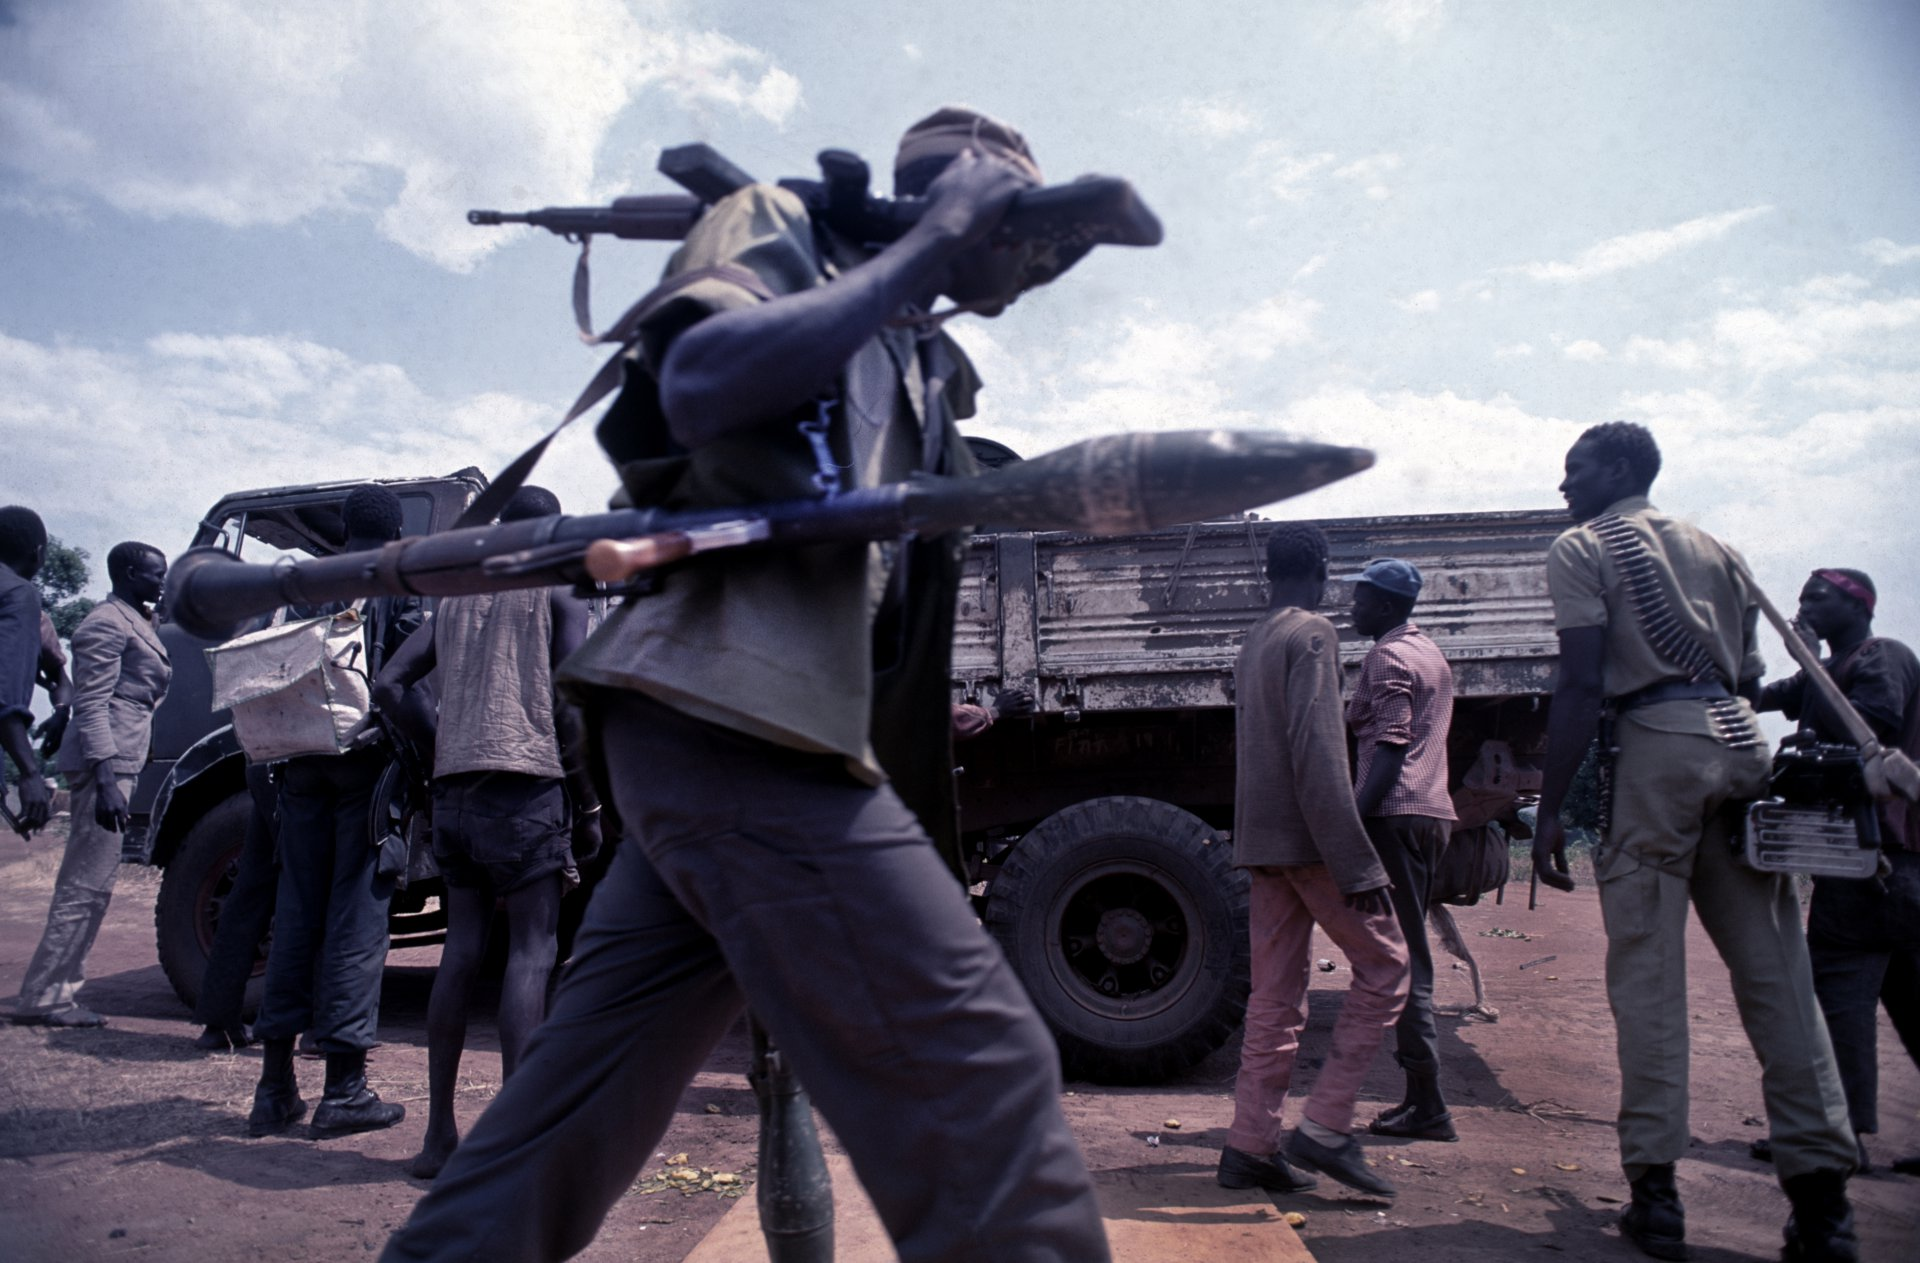 SPLA soldiers on the way to the frontline. Southern Sudan, 1991